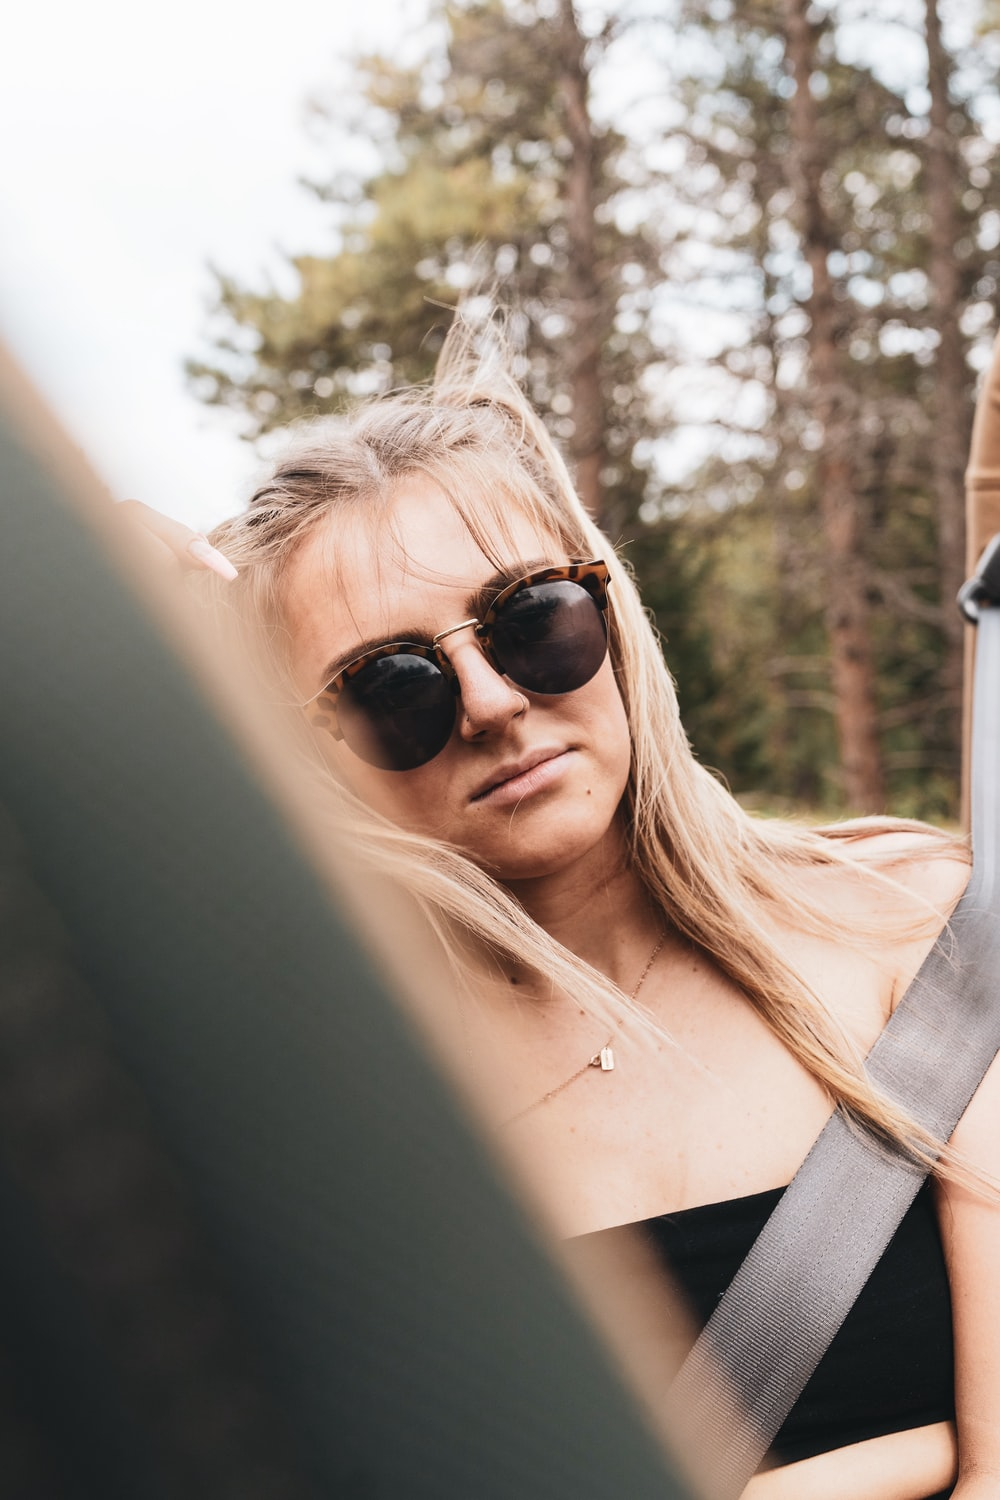 woman in black sunglasses and white shirt